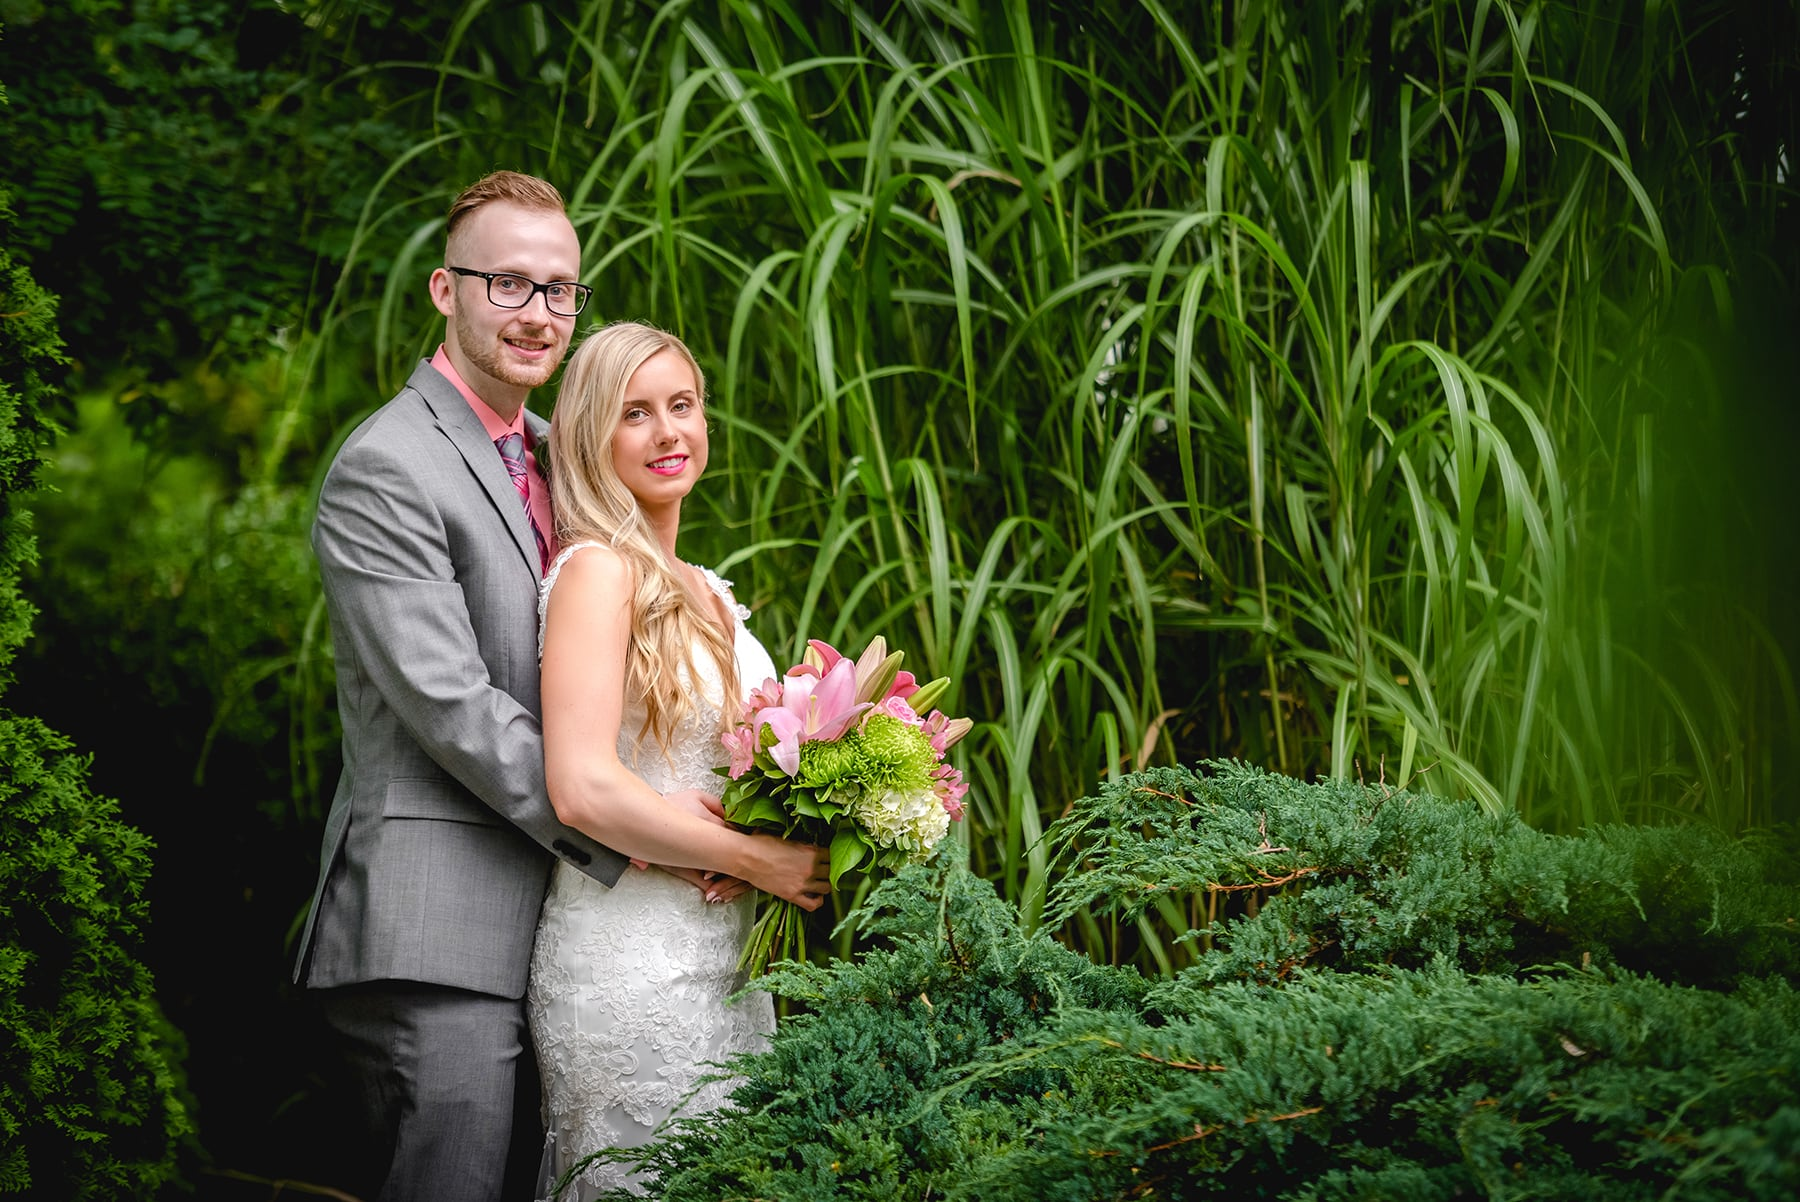 Liuna Gardens Wedding | Jessica & Keith